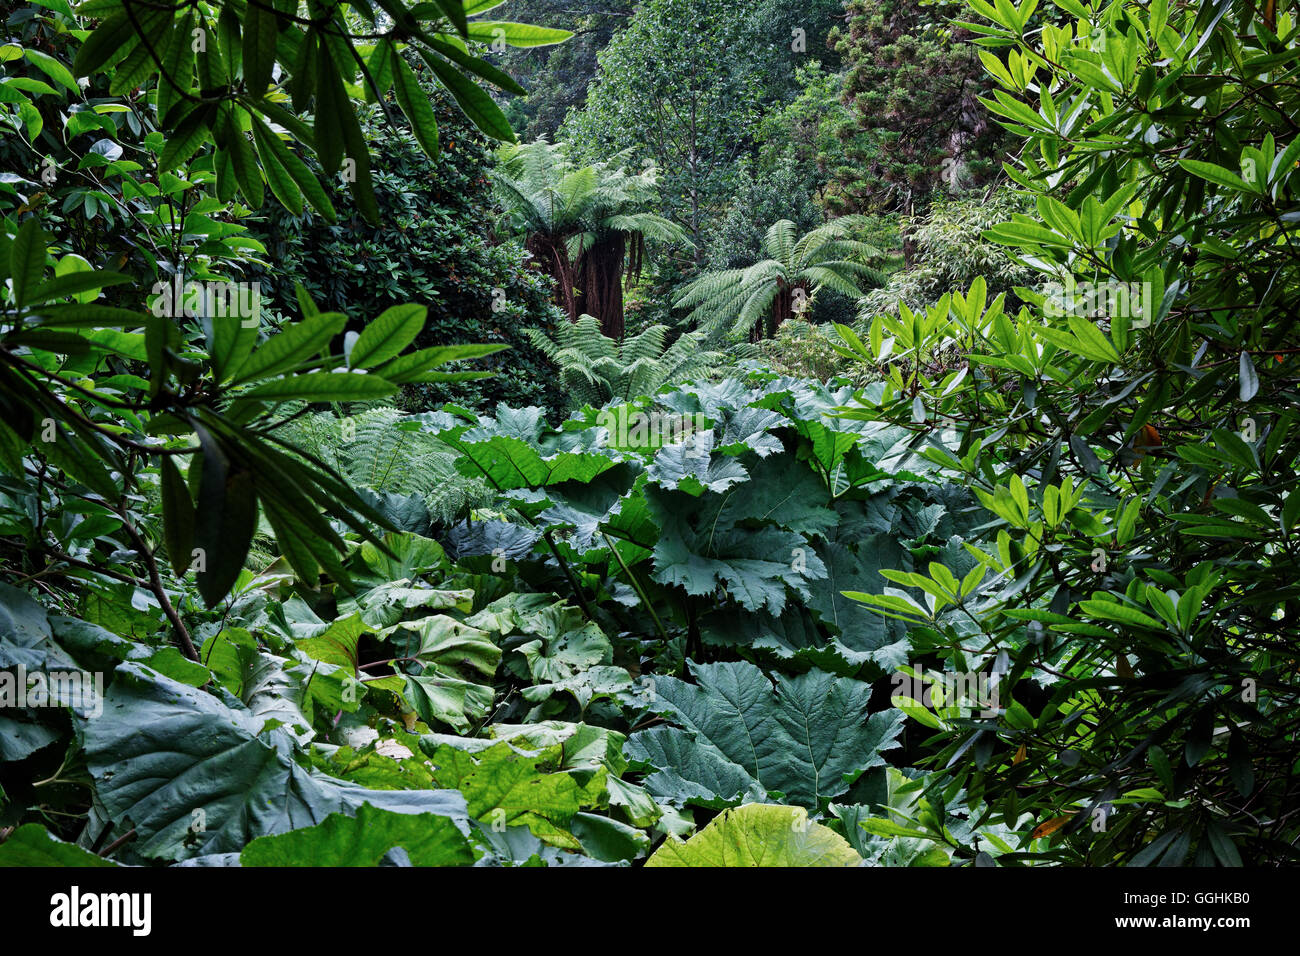 Lost Gardens of Heligan, Cornwall, England, Großbritannien Stockbild